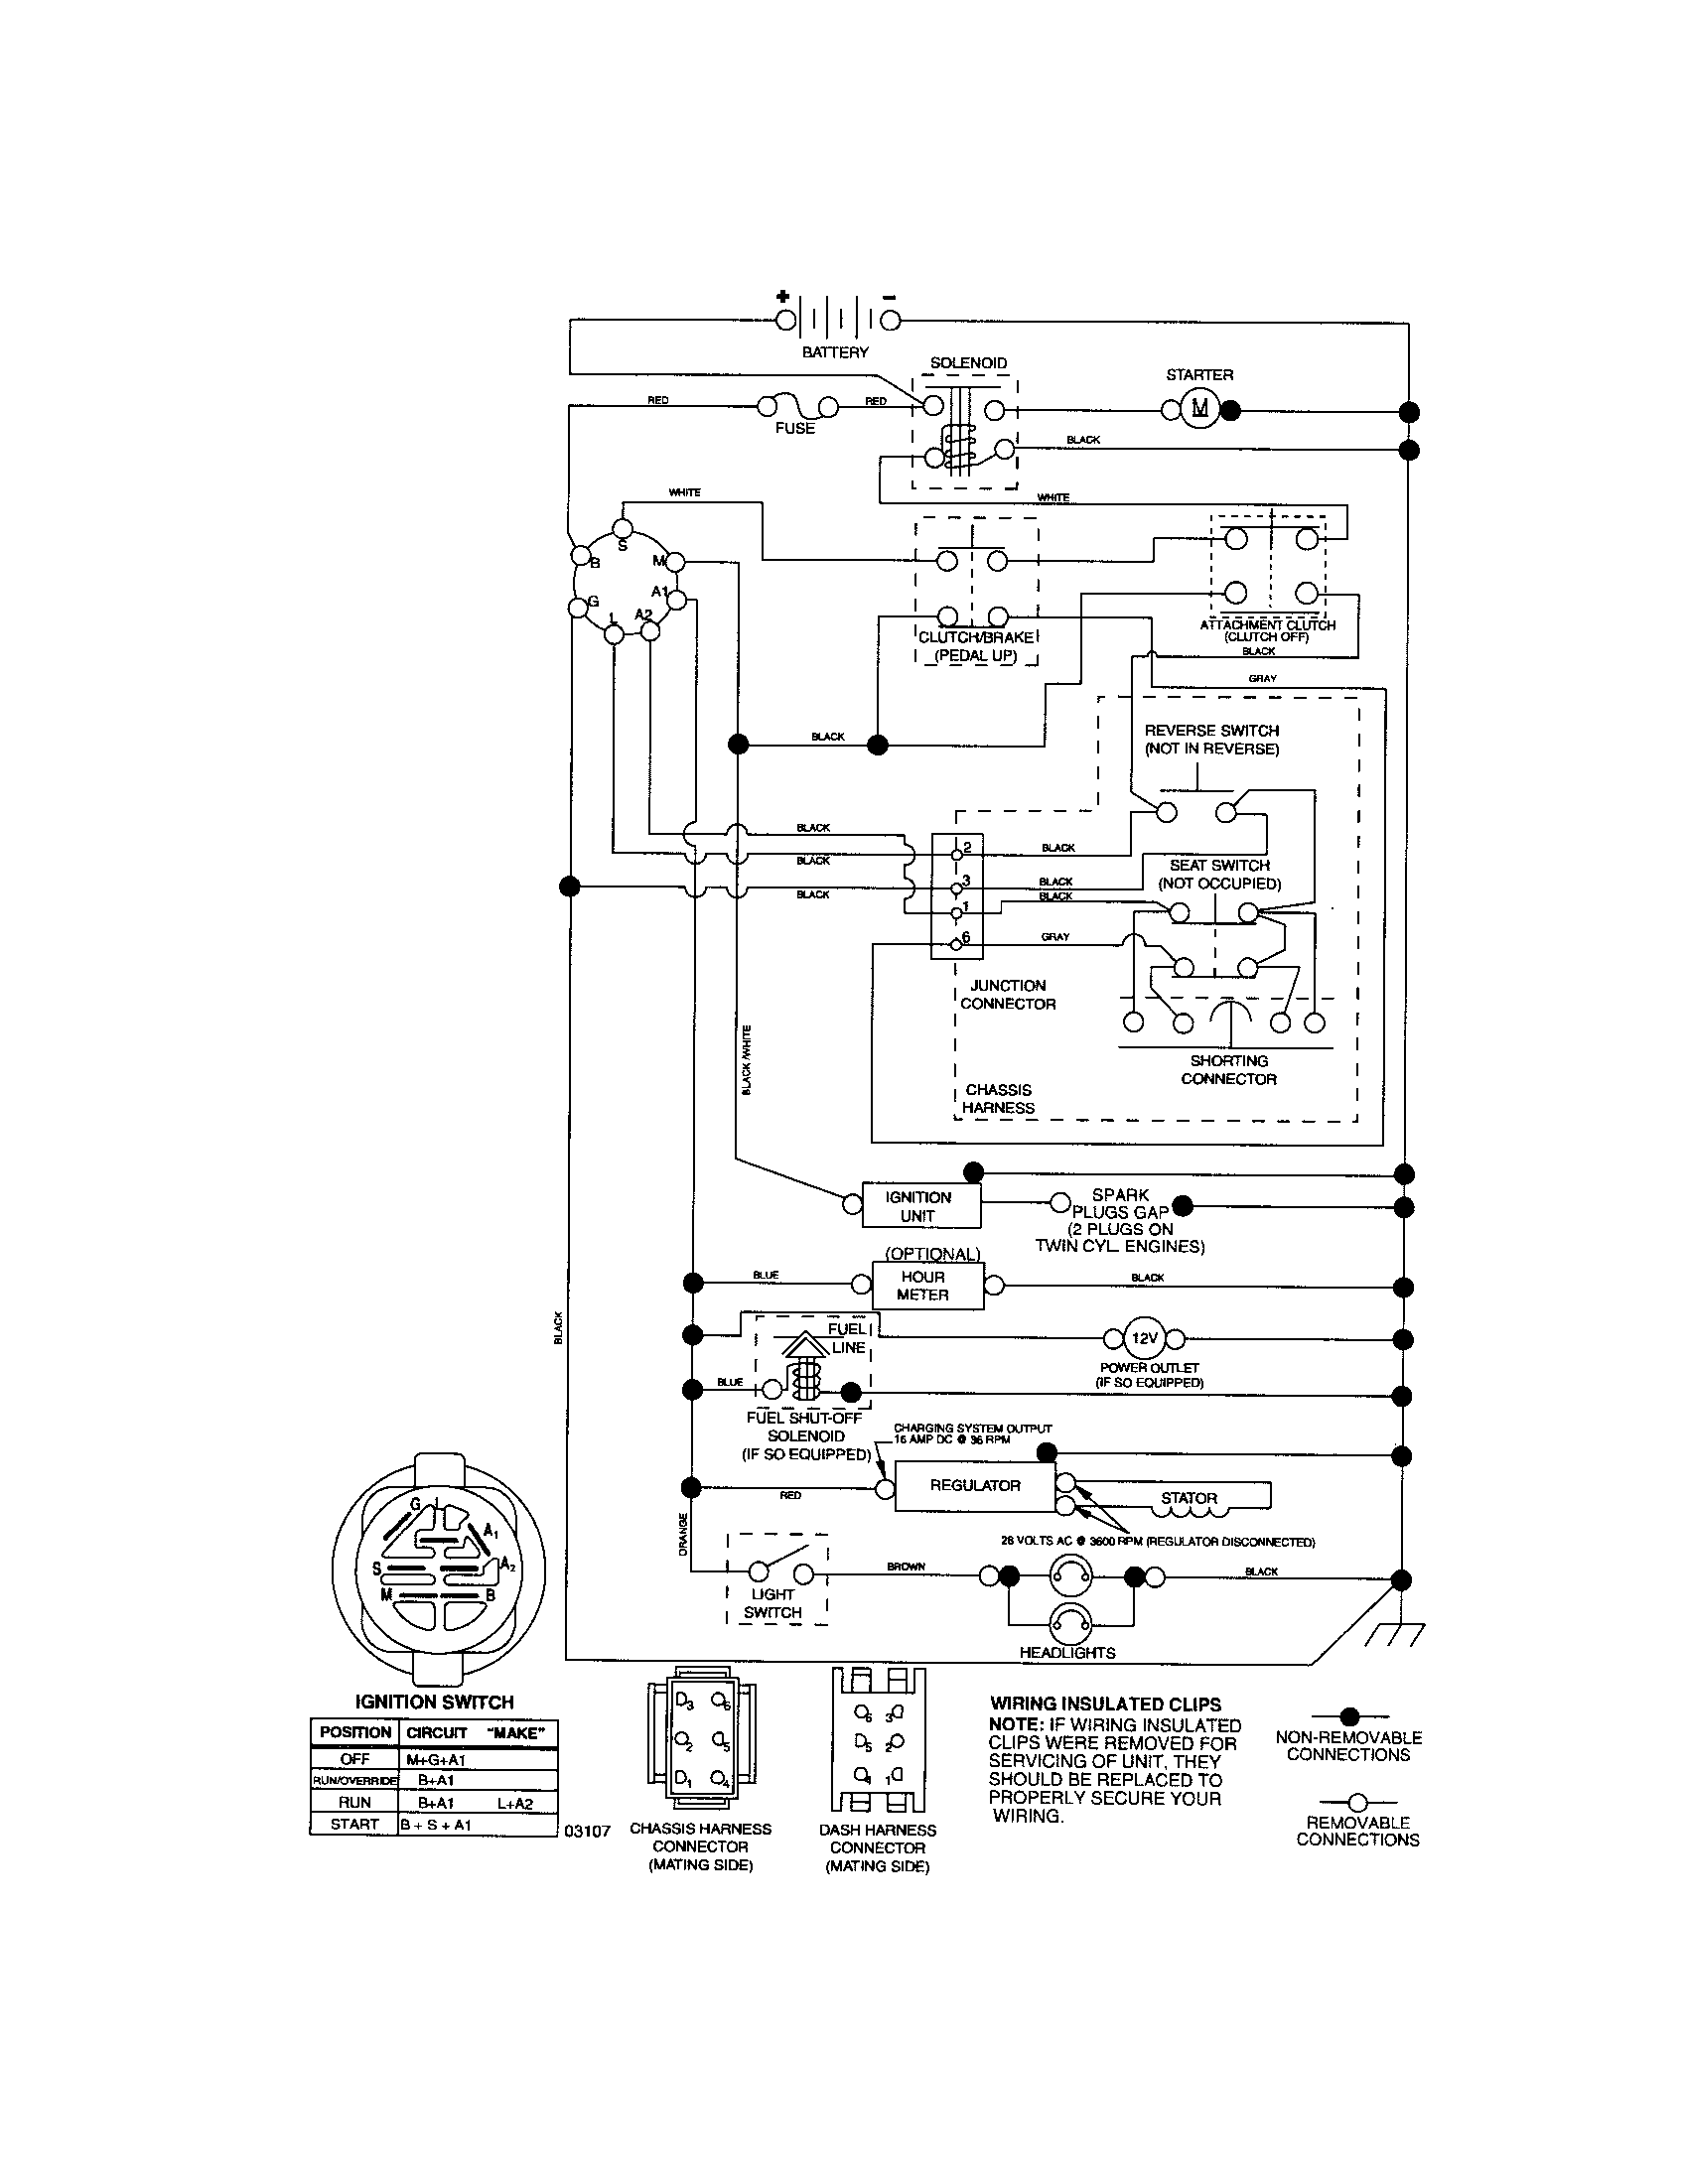 6af5f1447fd13c8443376822ddc1e105 craftsman riding mower electrical diagram wiring diagram Universal Wiring Harness Diagram at metegol.co